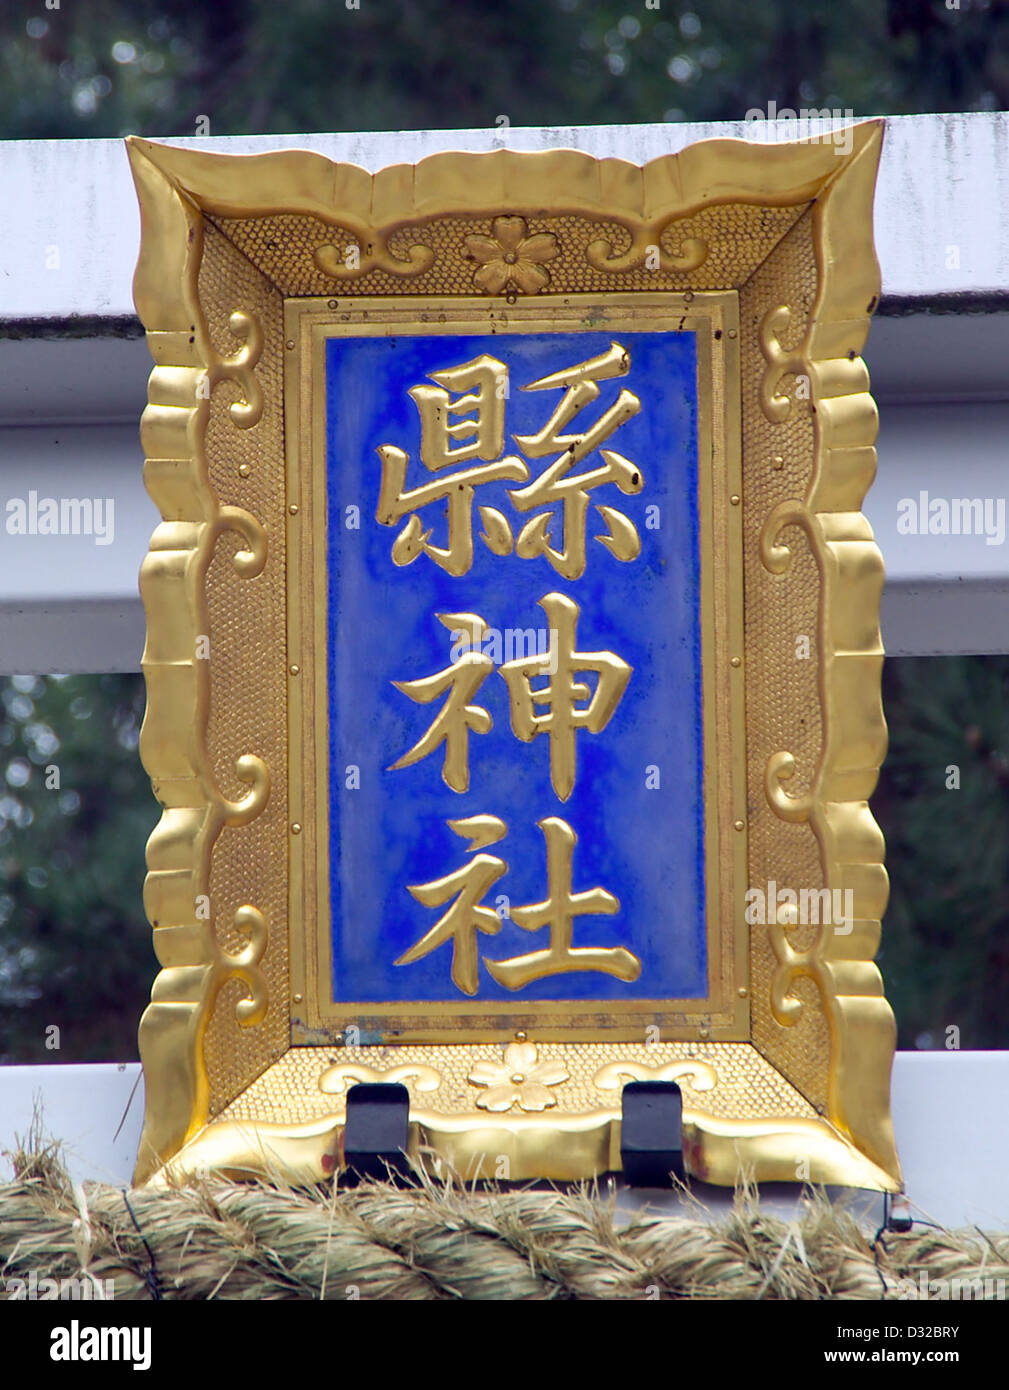 tablet containing the name of the Agata Shrine in the city of Uji, Kyoto prefecture. - Stock Image